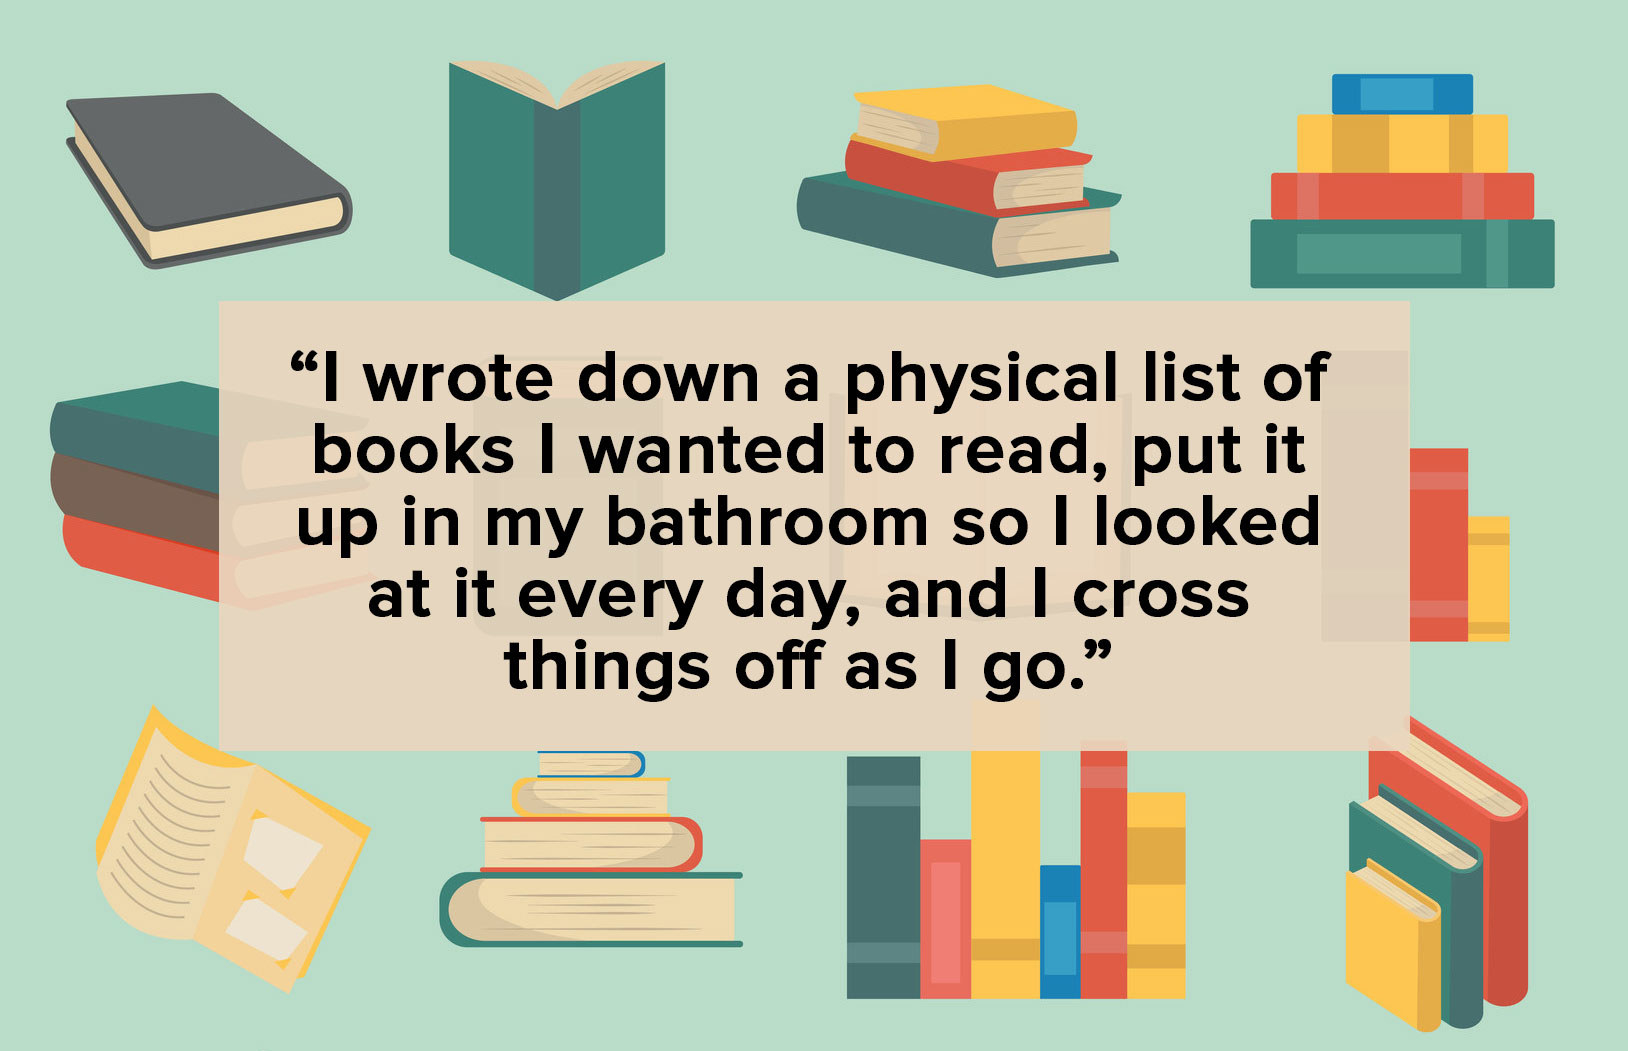 """I went wrote down a physical list of books I wanted to read, put it up in my bathroom so I looked at it every day, and I cross things off as I go."" text over illustration of books"